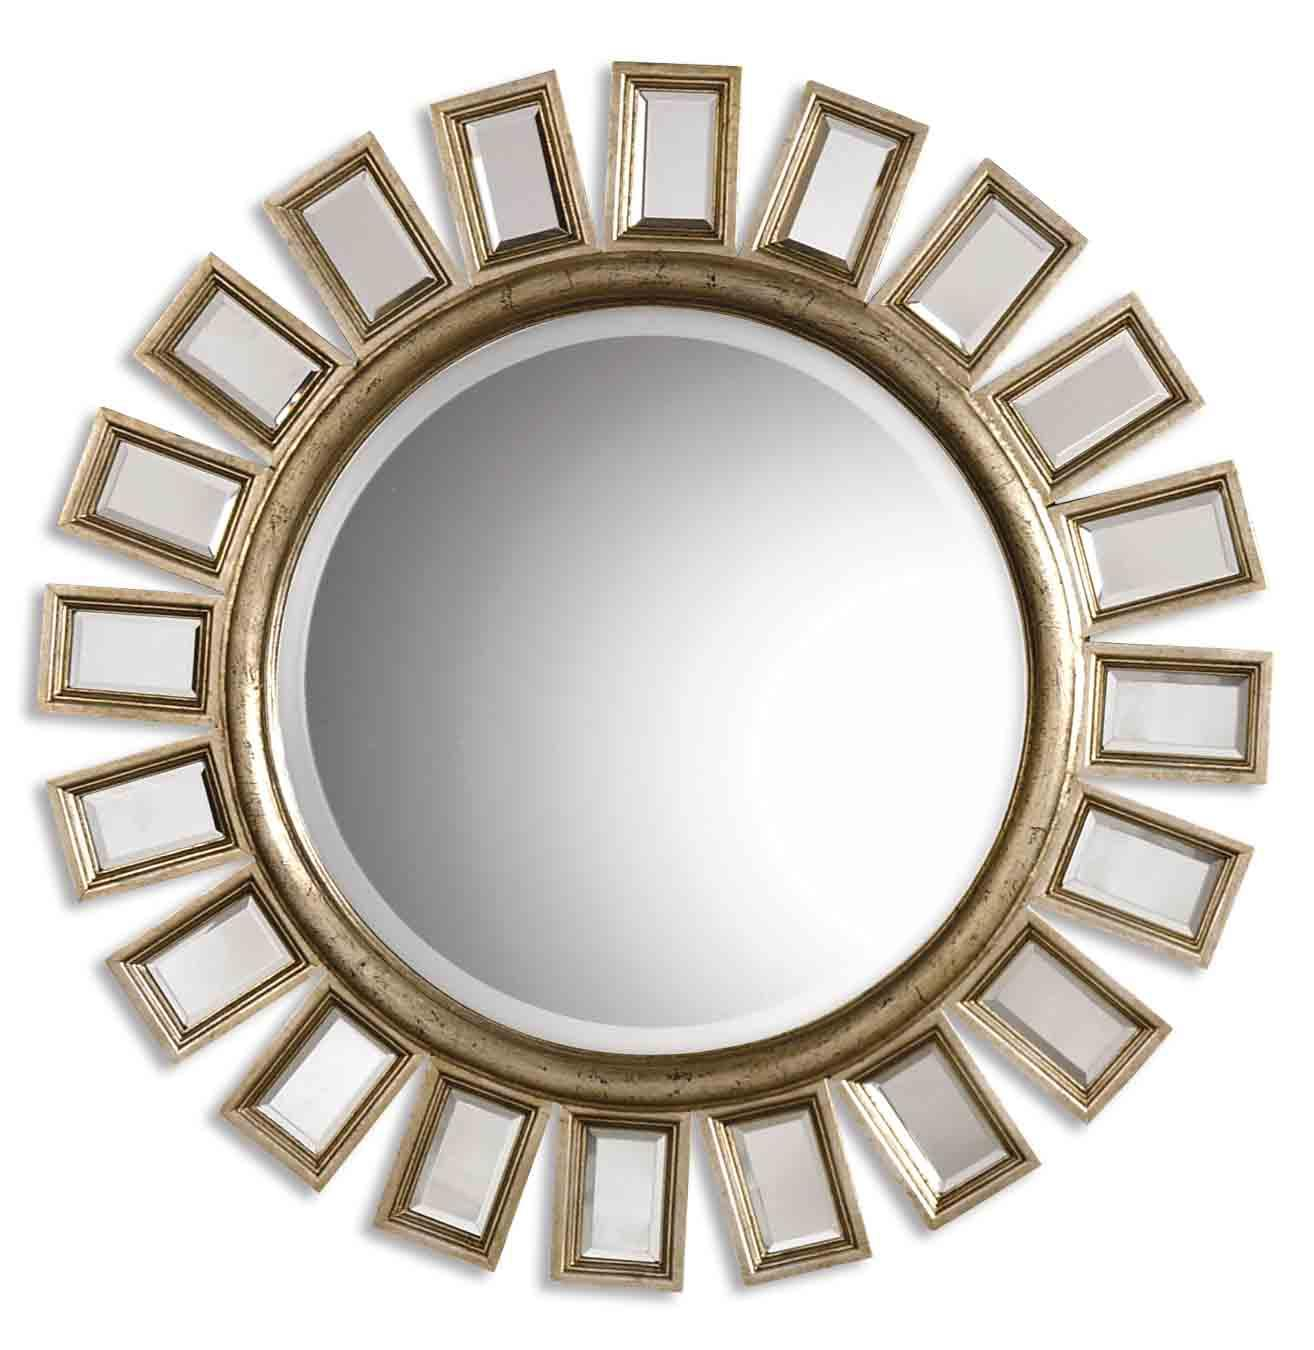 Uttermost Mirrors Cyrus - Item Number: 14076 B